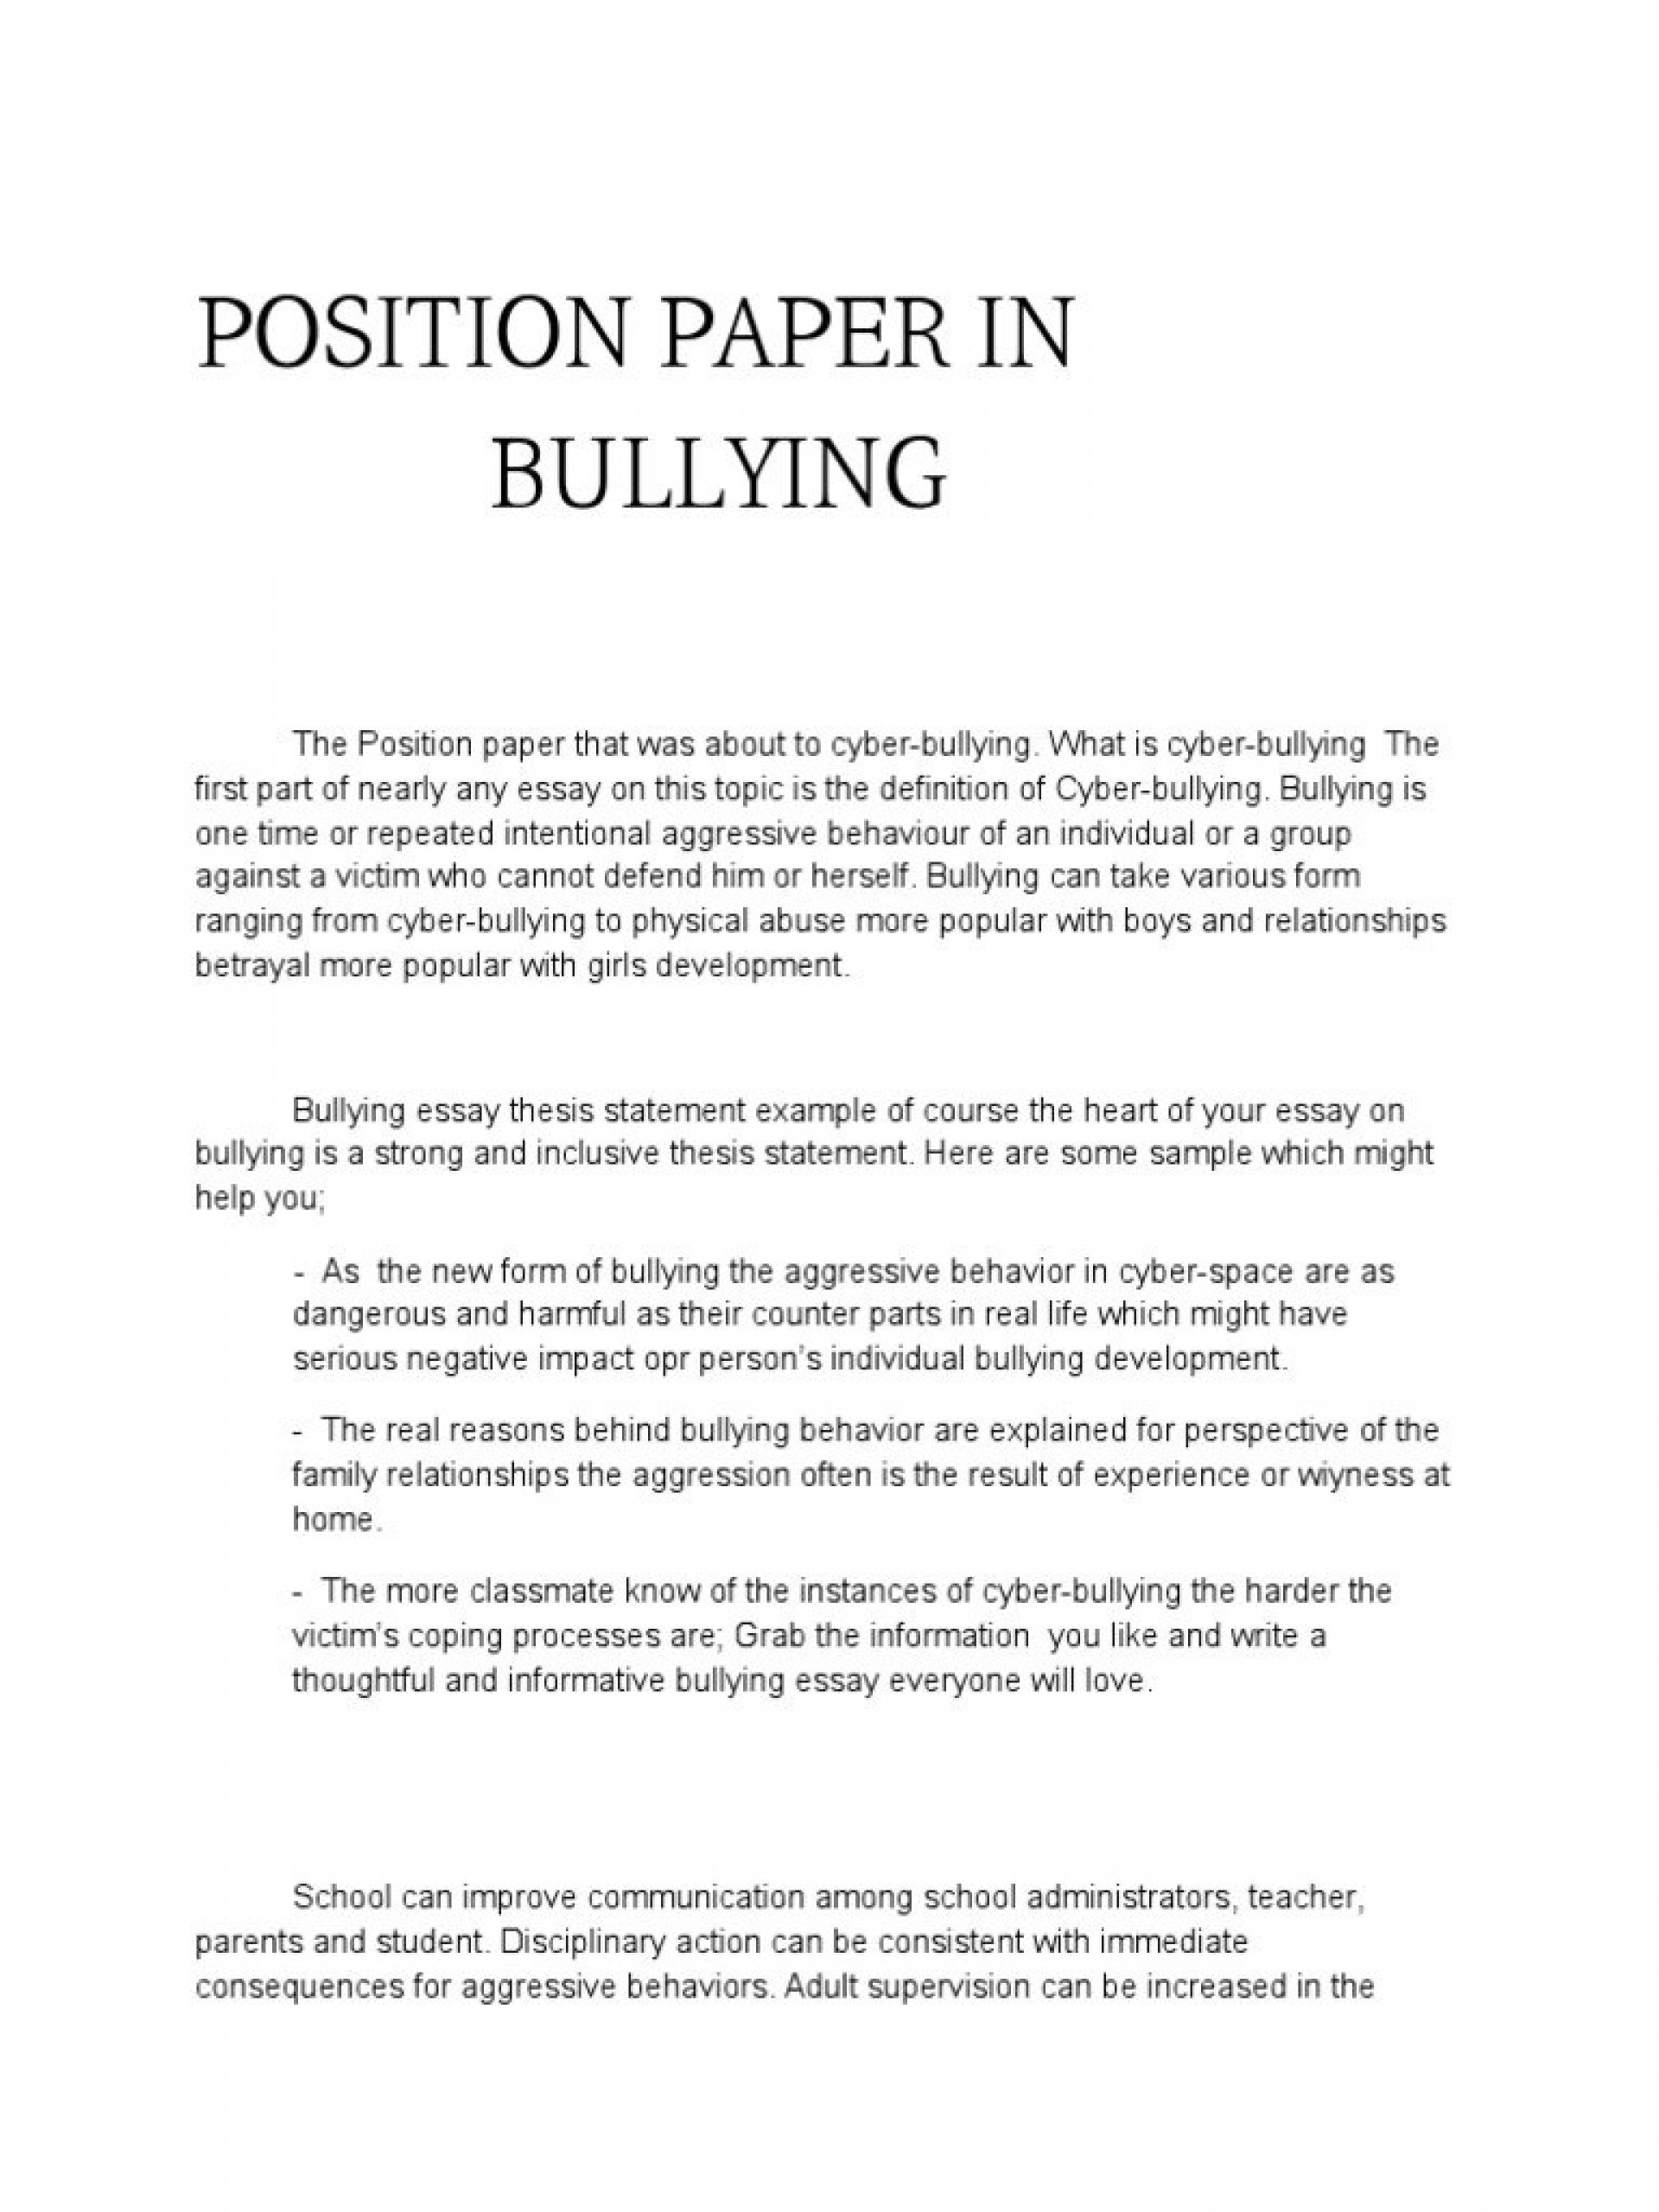 005 Bullying Essay Example Good Conclusion For Academic Writing Service Cause And Effect On In Awful Cyber Outline Creative Titles Anti 1920